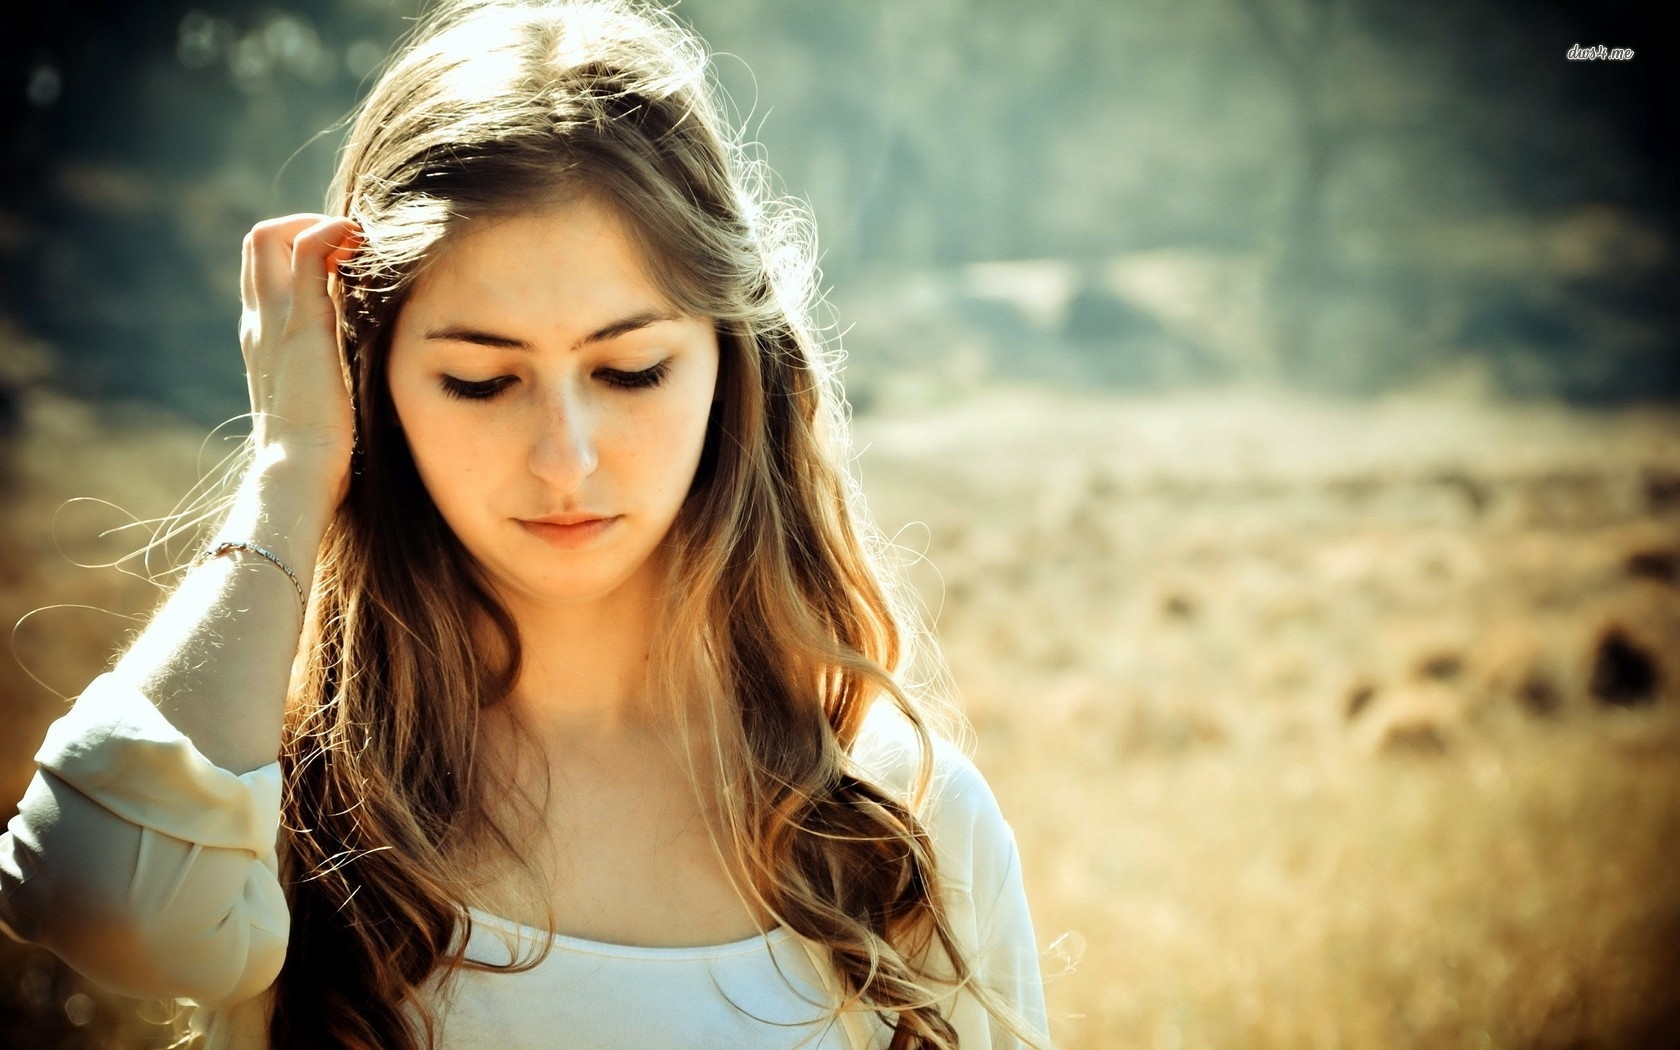 Nice Profile Free Hd Wallpapers For Fb: Cool And Stylish Profile Pictures For Girls Review